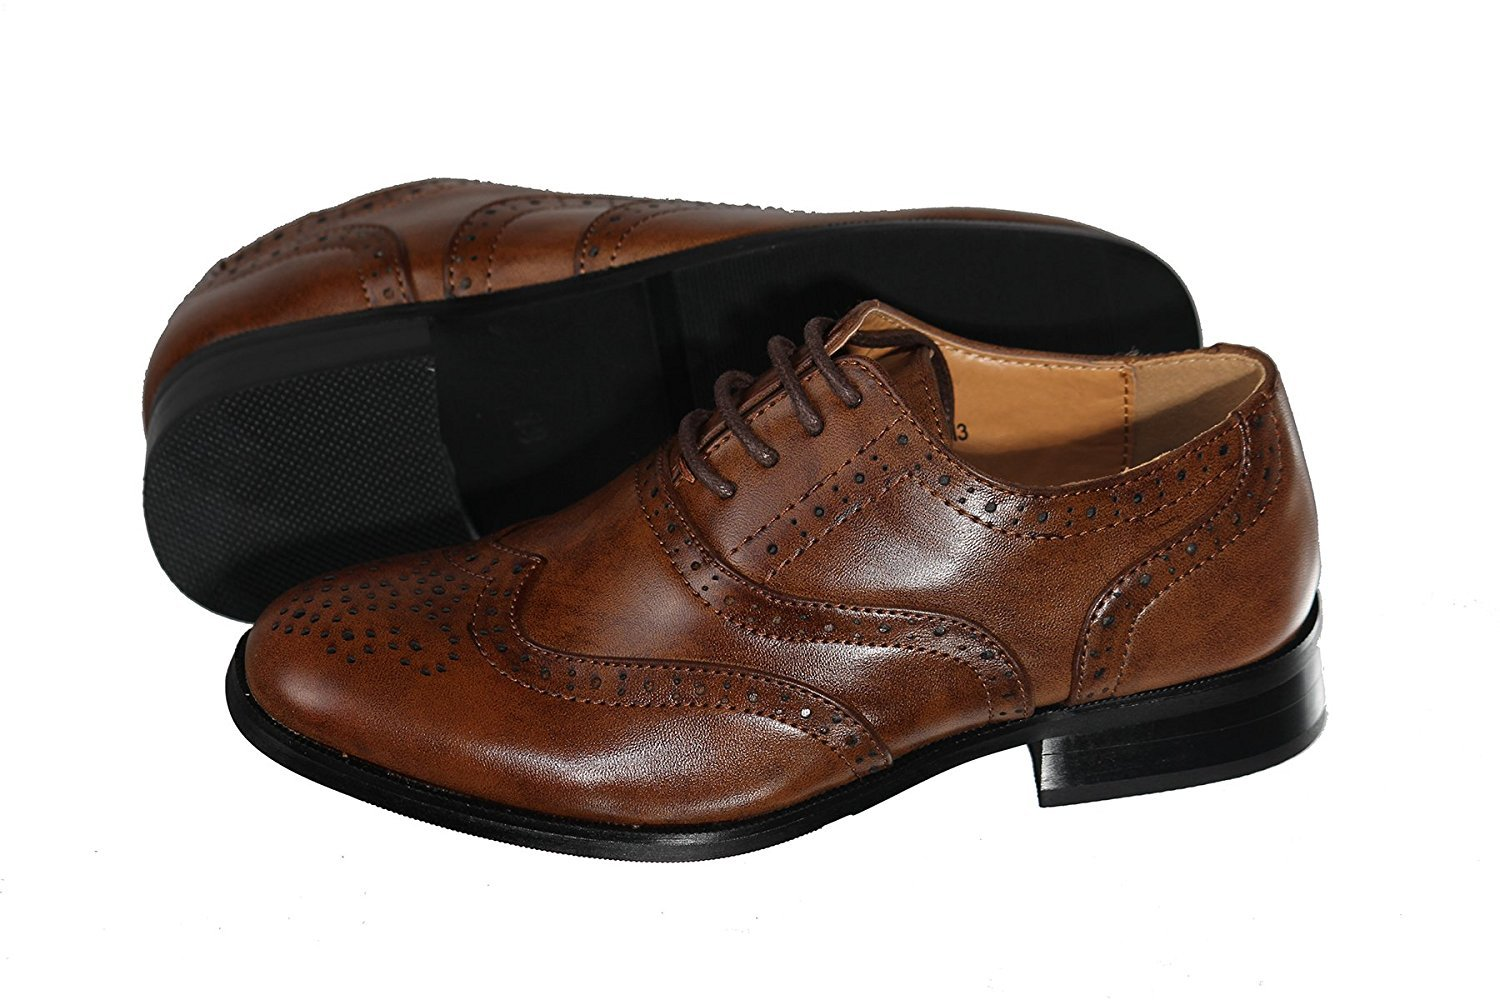 Avery Hill Boys Lace-Up Formal Oxford Style Dress Shoes - BRWN Toddler 8 Brown by Avery Hill (Image #3)